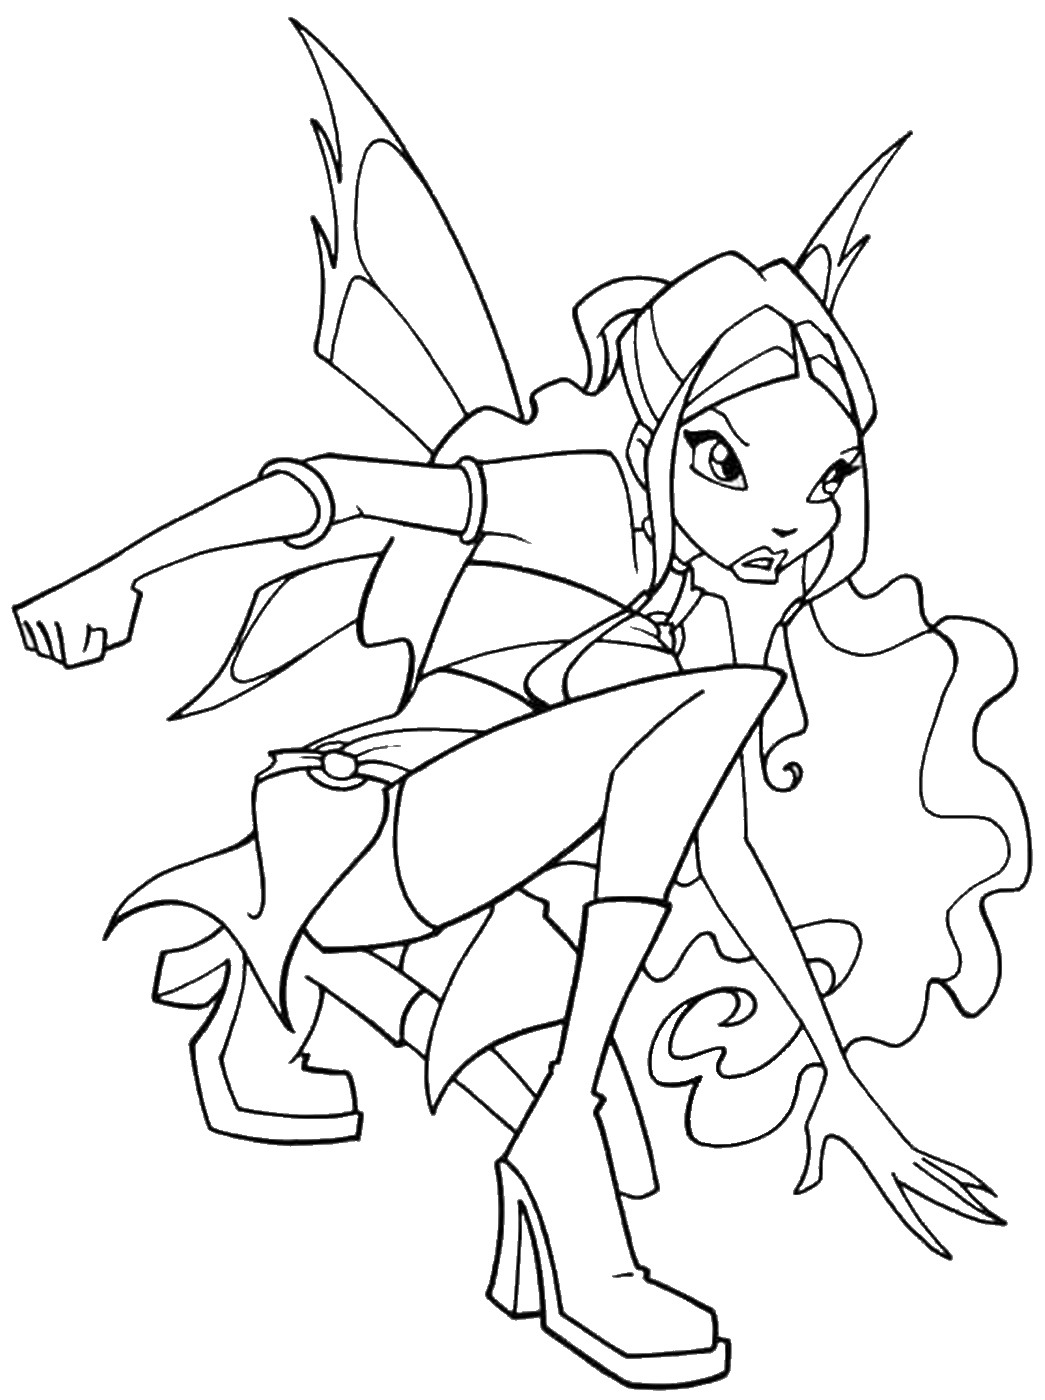 coloring winx club world of winx coloring pages casual outfit winx club all winx club coloring